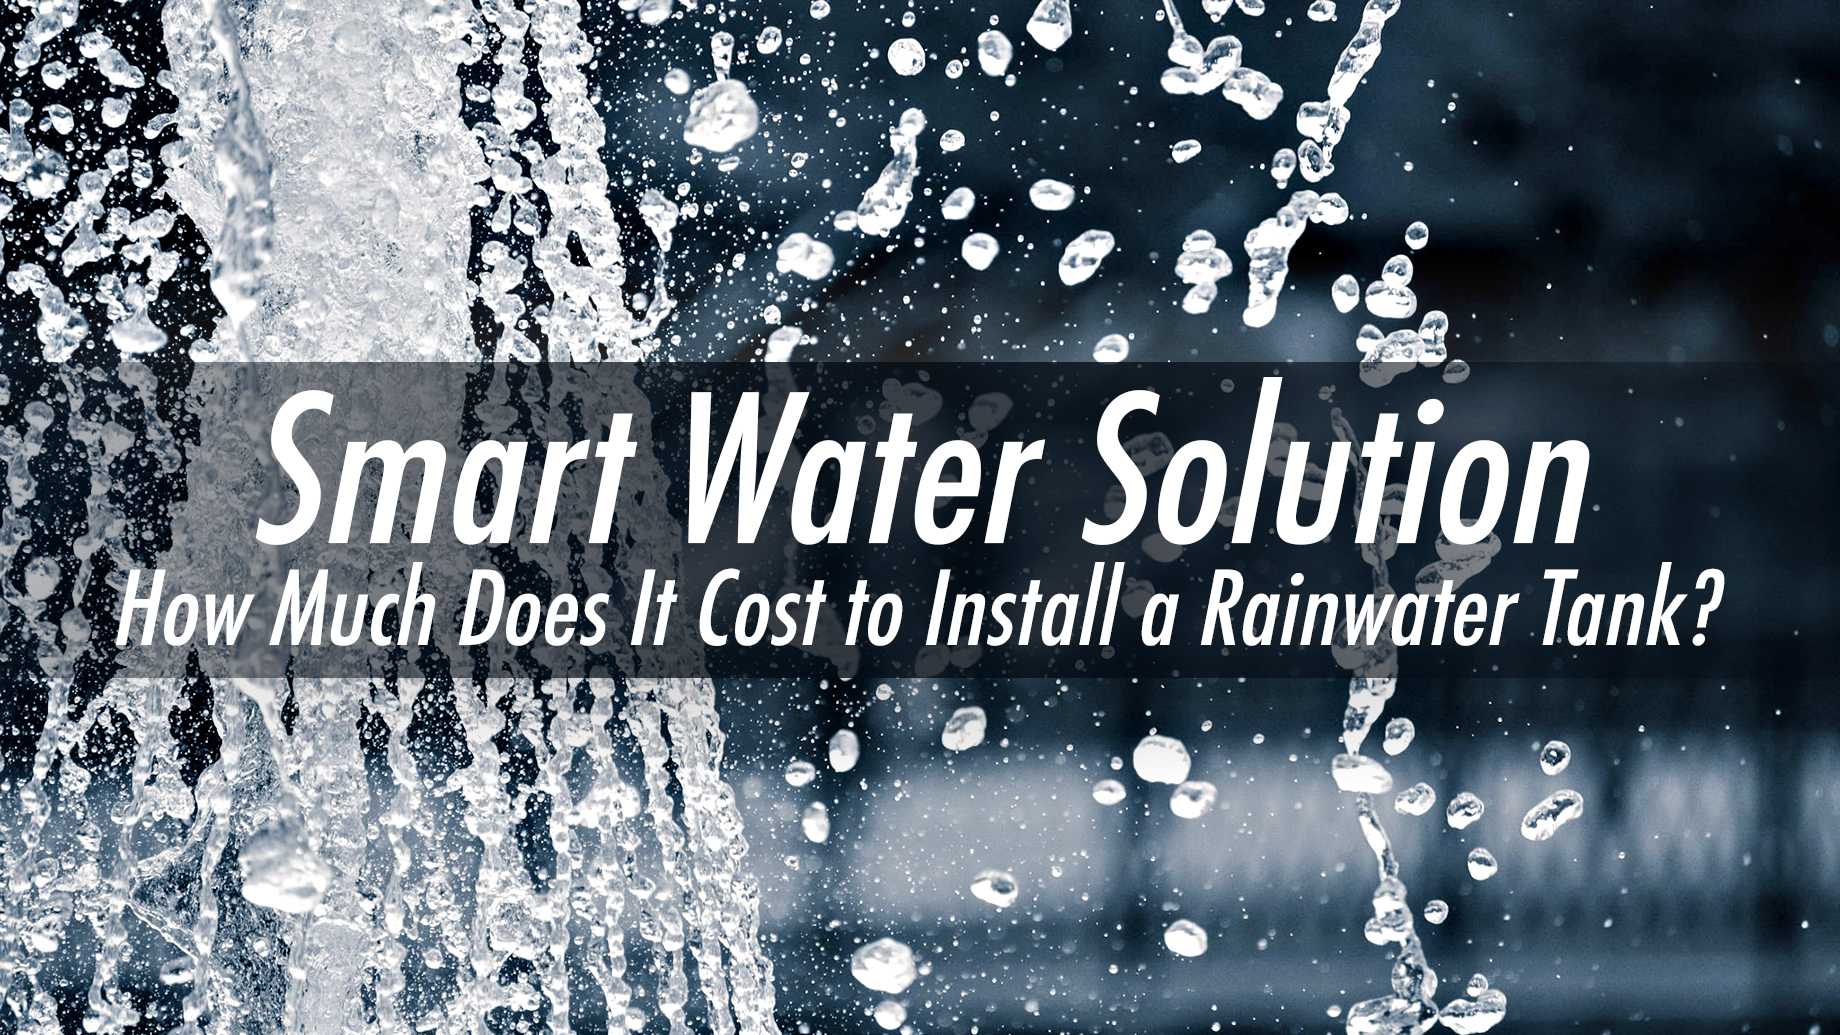 Smart Water Solution - How Much Does It Cost to Install a Rainwater Tank?